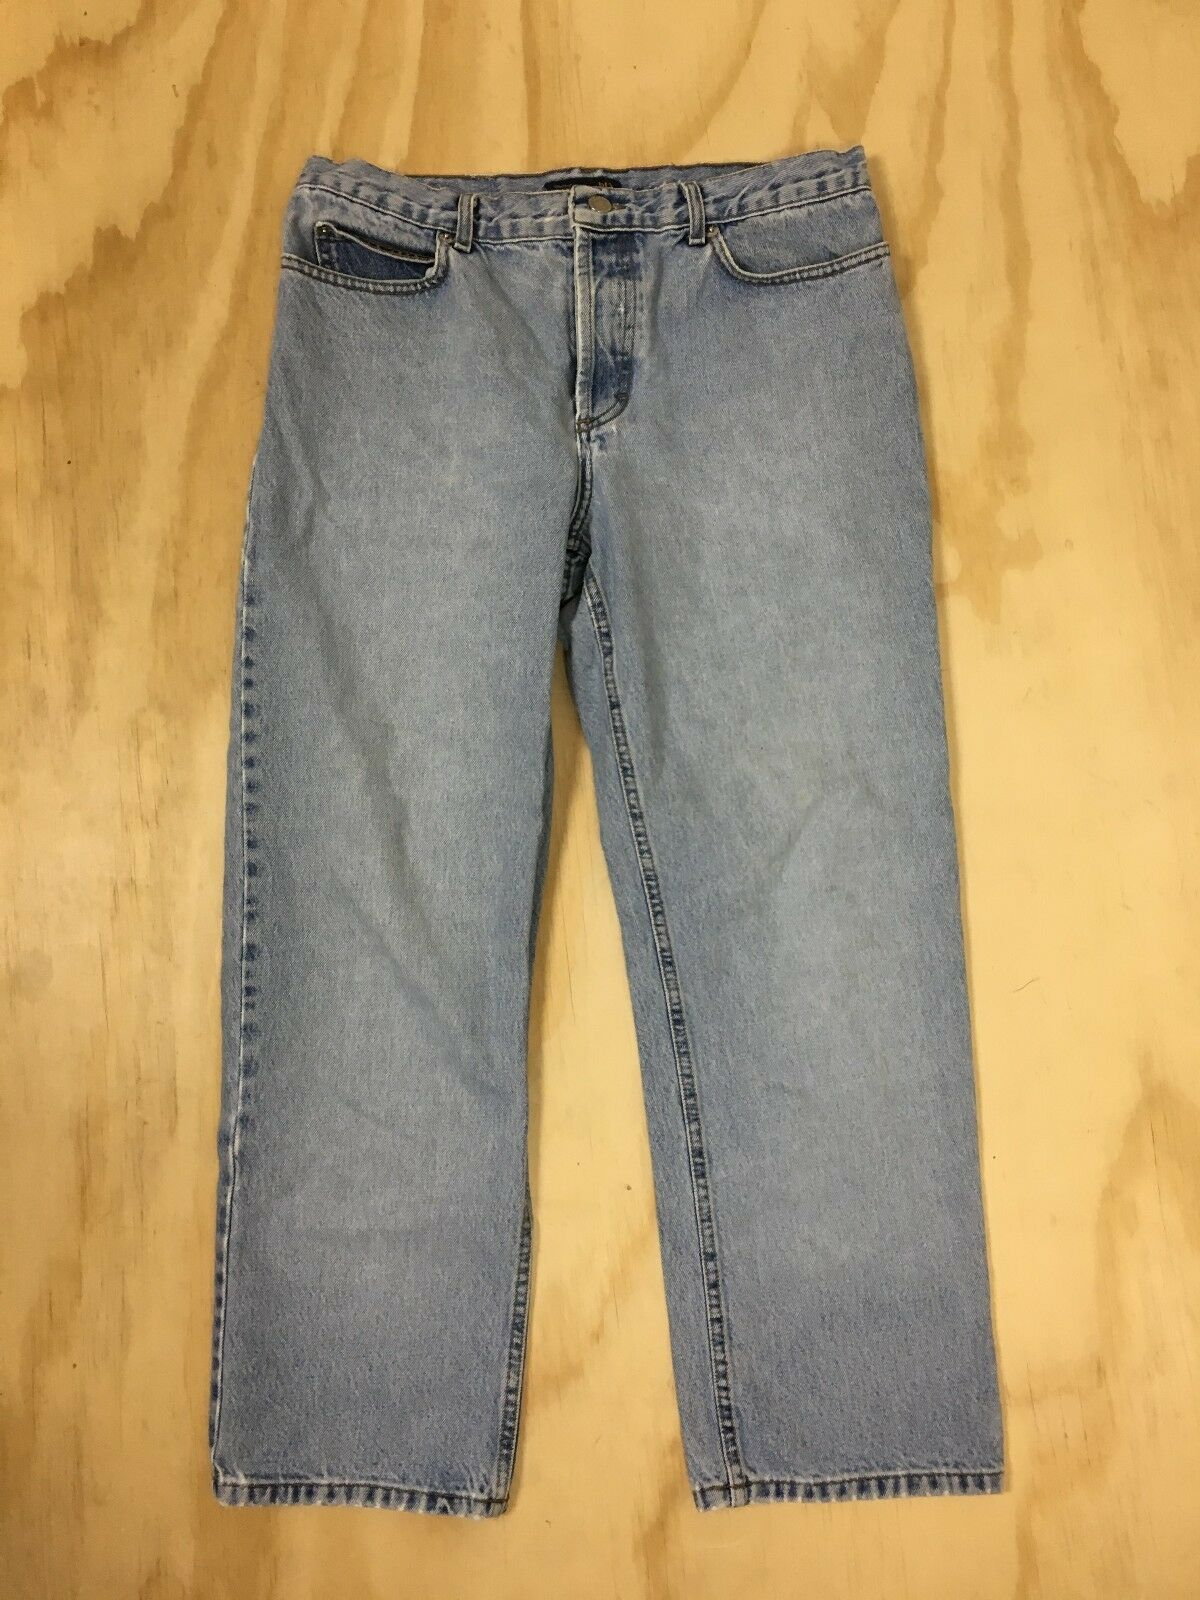 J.Crew Women's P12 31x26.5 High Rise Retro Vintage Crop Straight Button Jeans